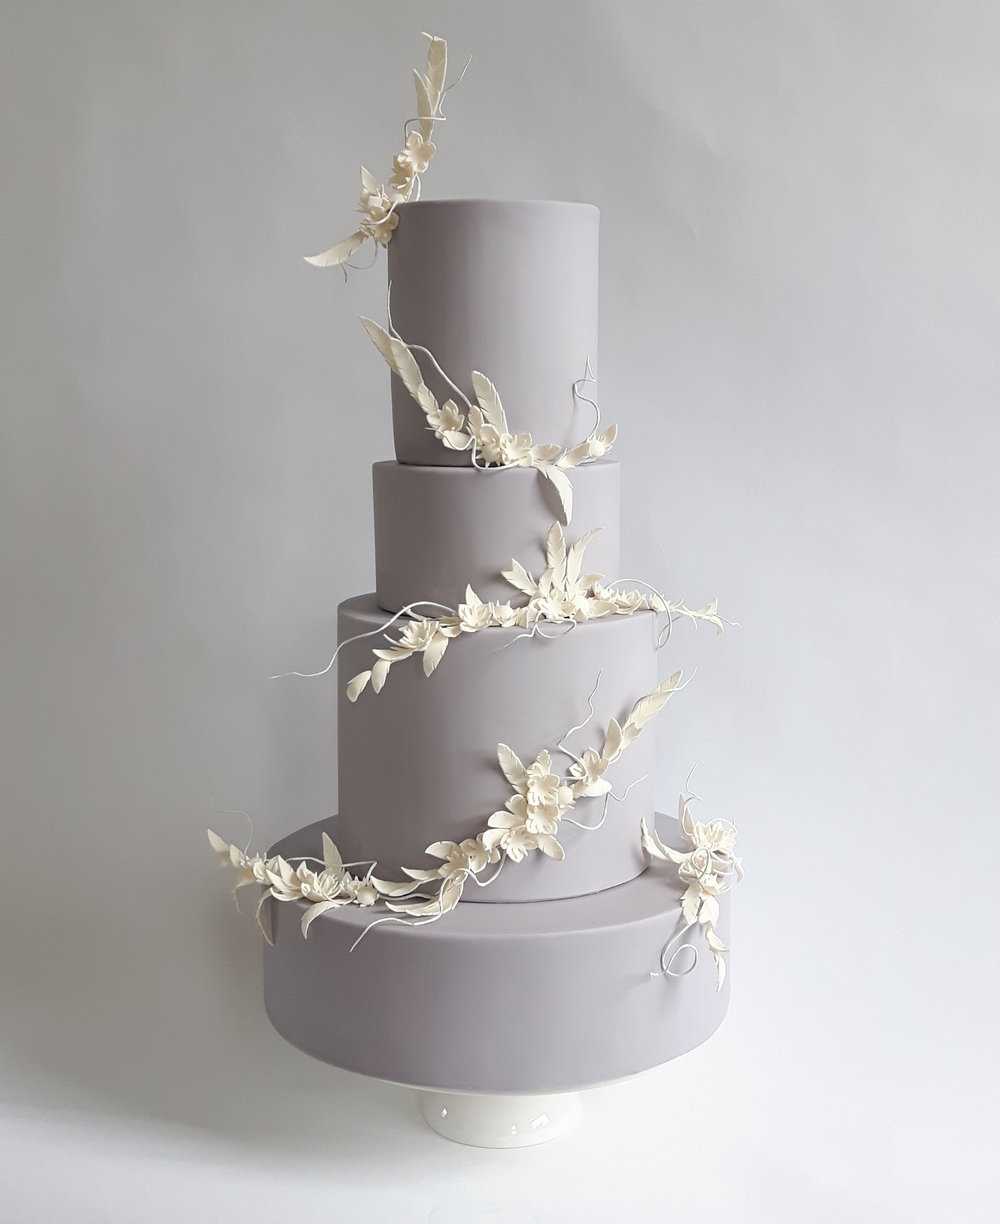 Midwinter Botanical four tier wedding cake by Claire Owen Cakes 2017.jpg